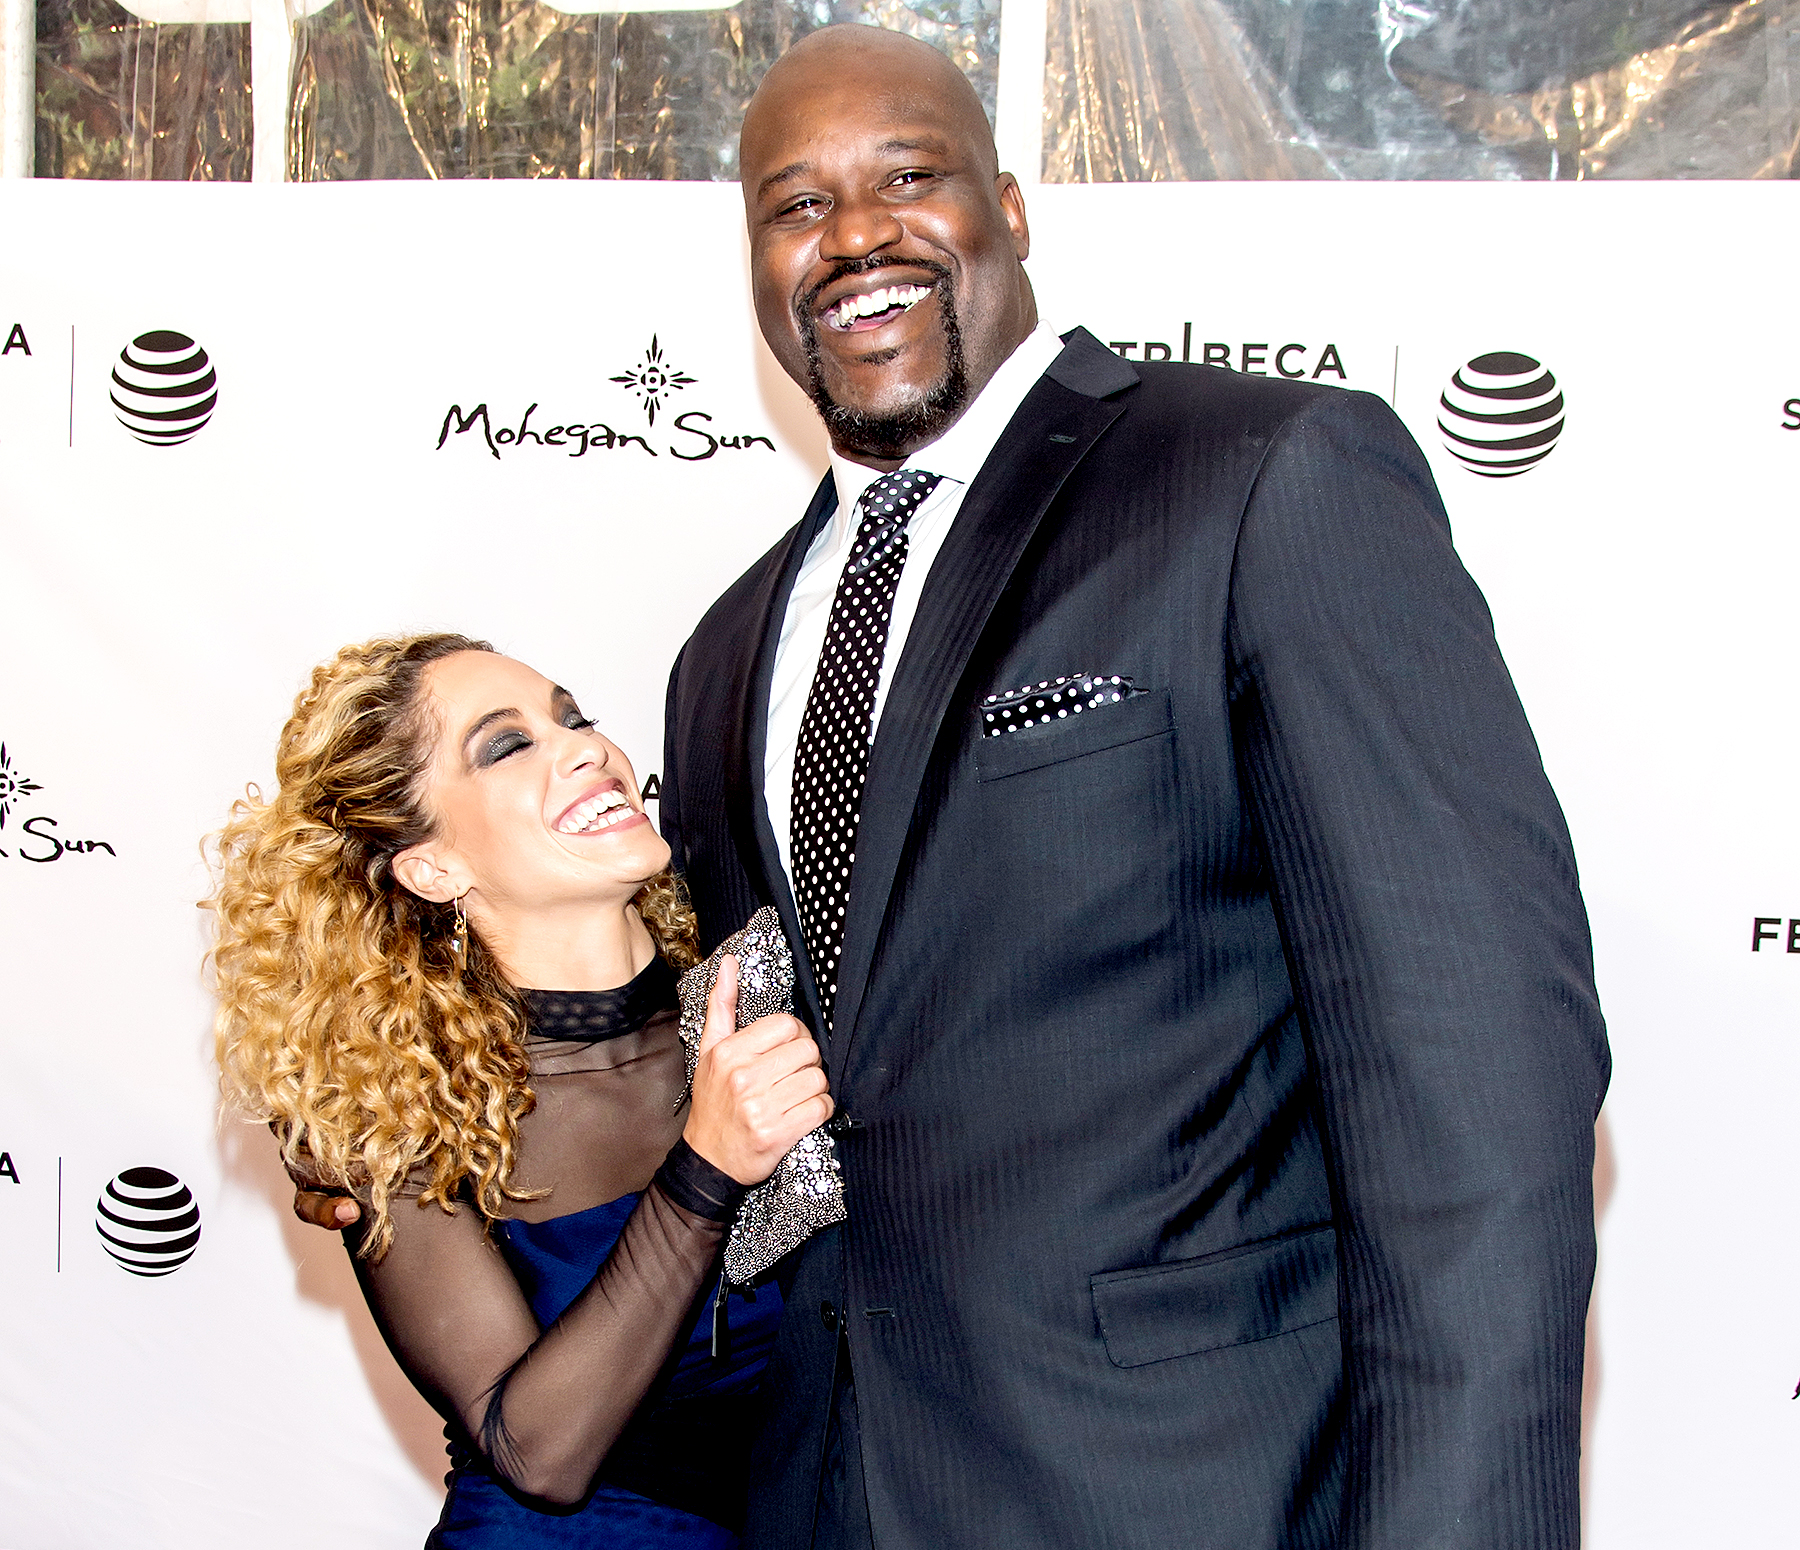 Is Shaquille O Neal Engaged To Girlfriend Laticia Rolle See Her Ring Lipstick Alley Who is this woman shaquille o'neal is dating? is shaquille o neal engaged to girlfriend laticia rolle see her ring lipstick alley